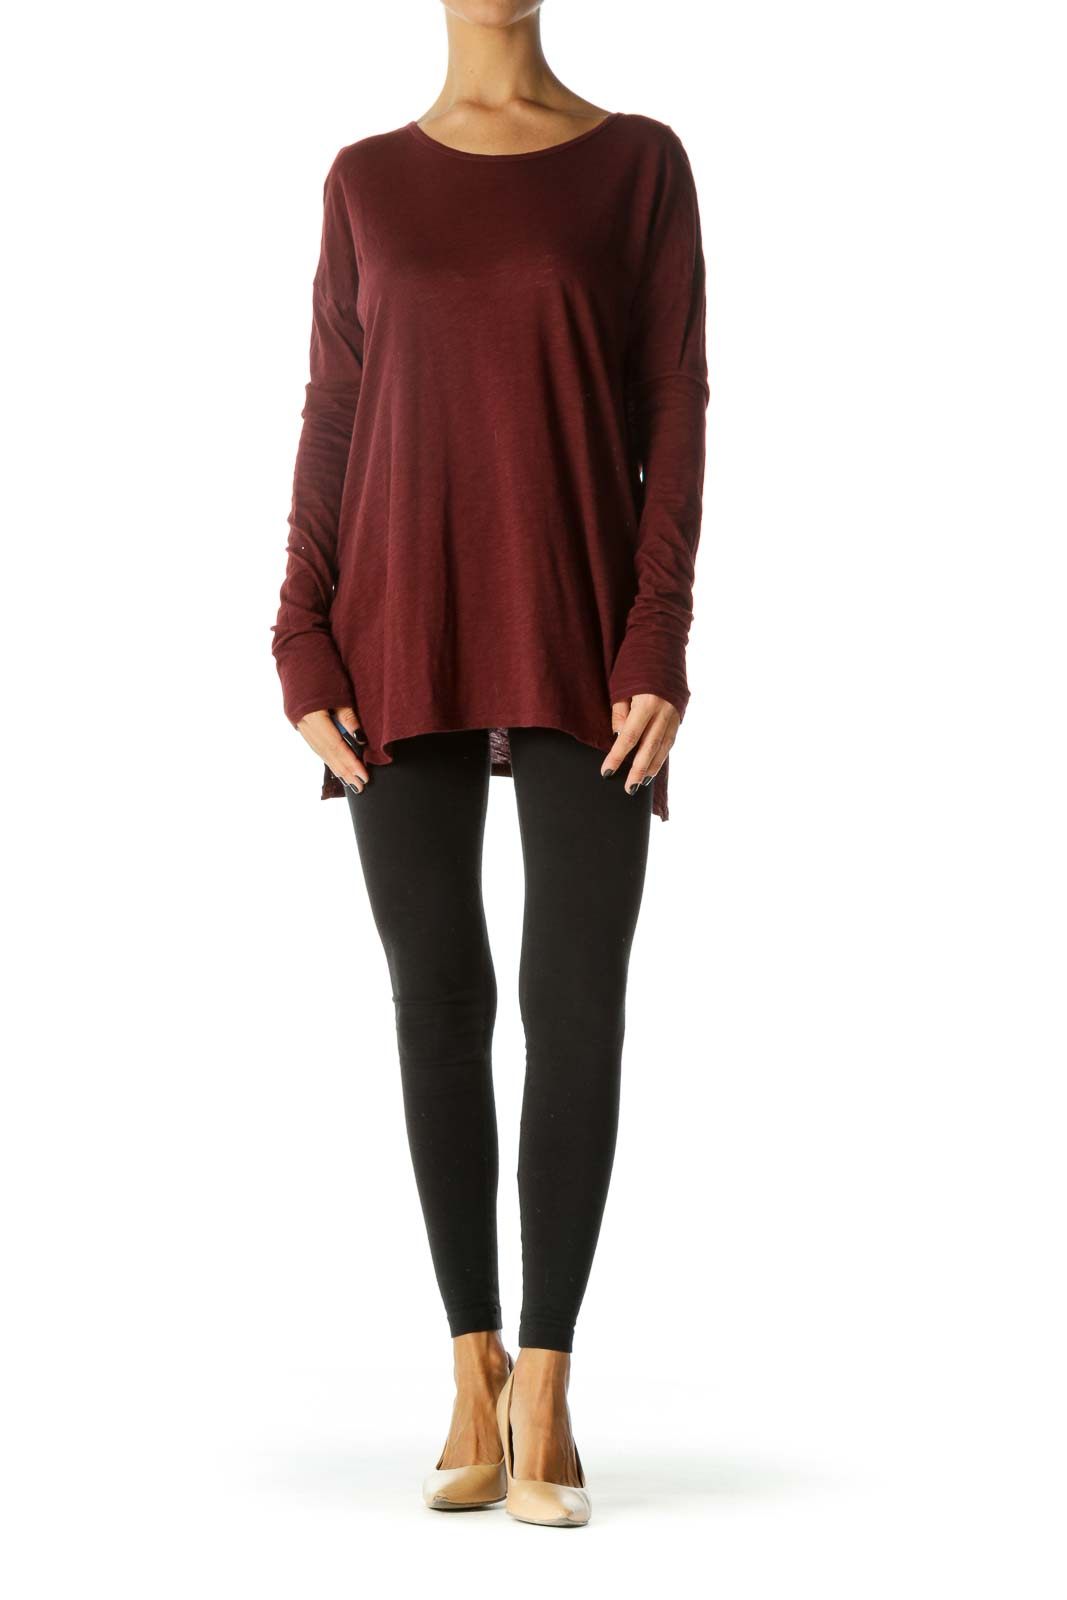 Burgundy Round Neck Open Back Long Sleeve Top